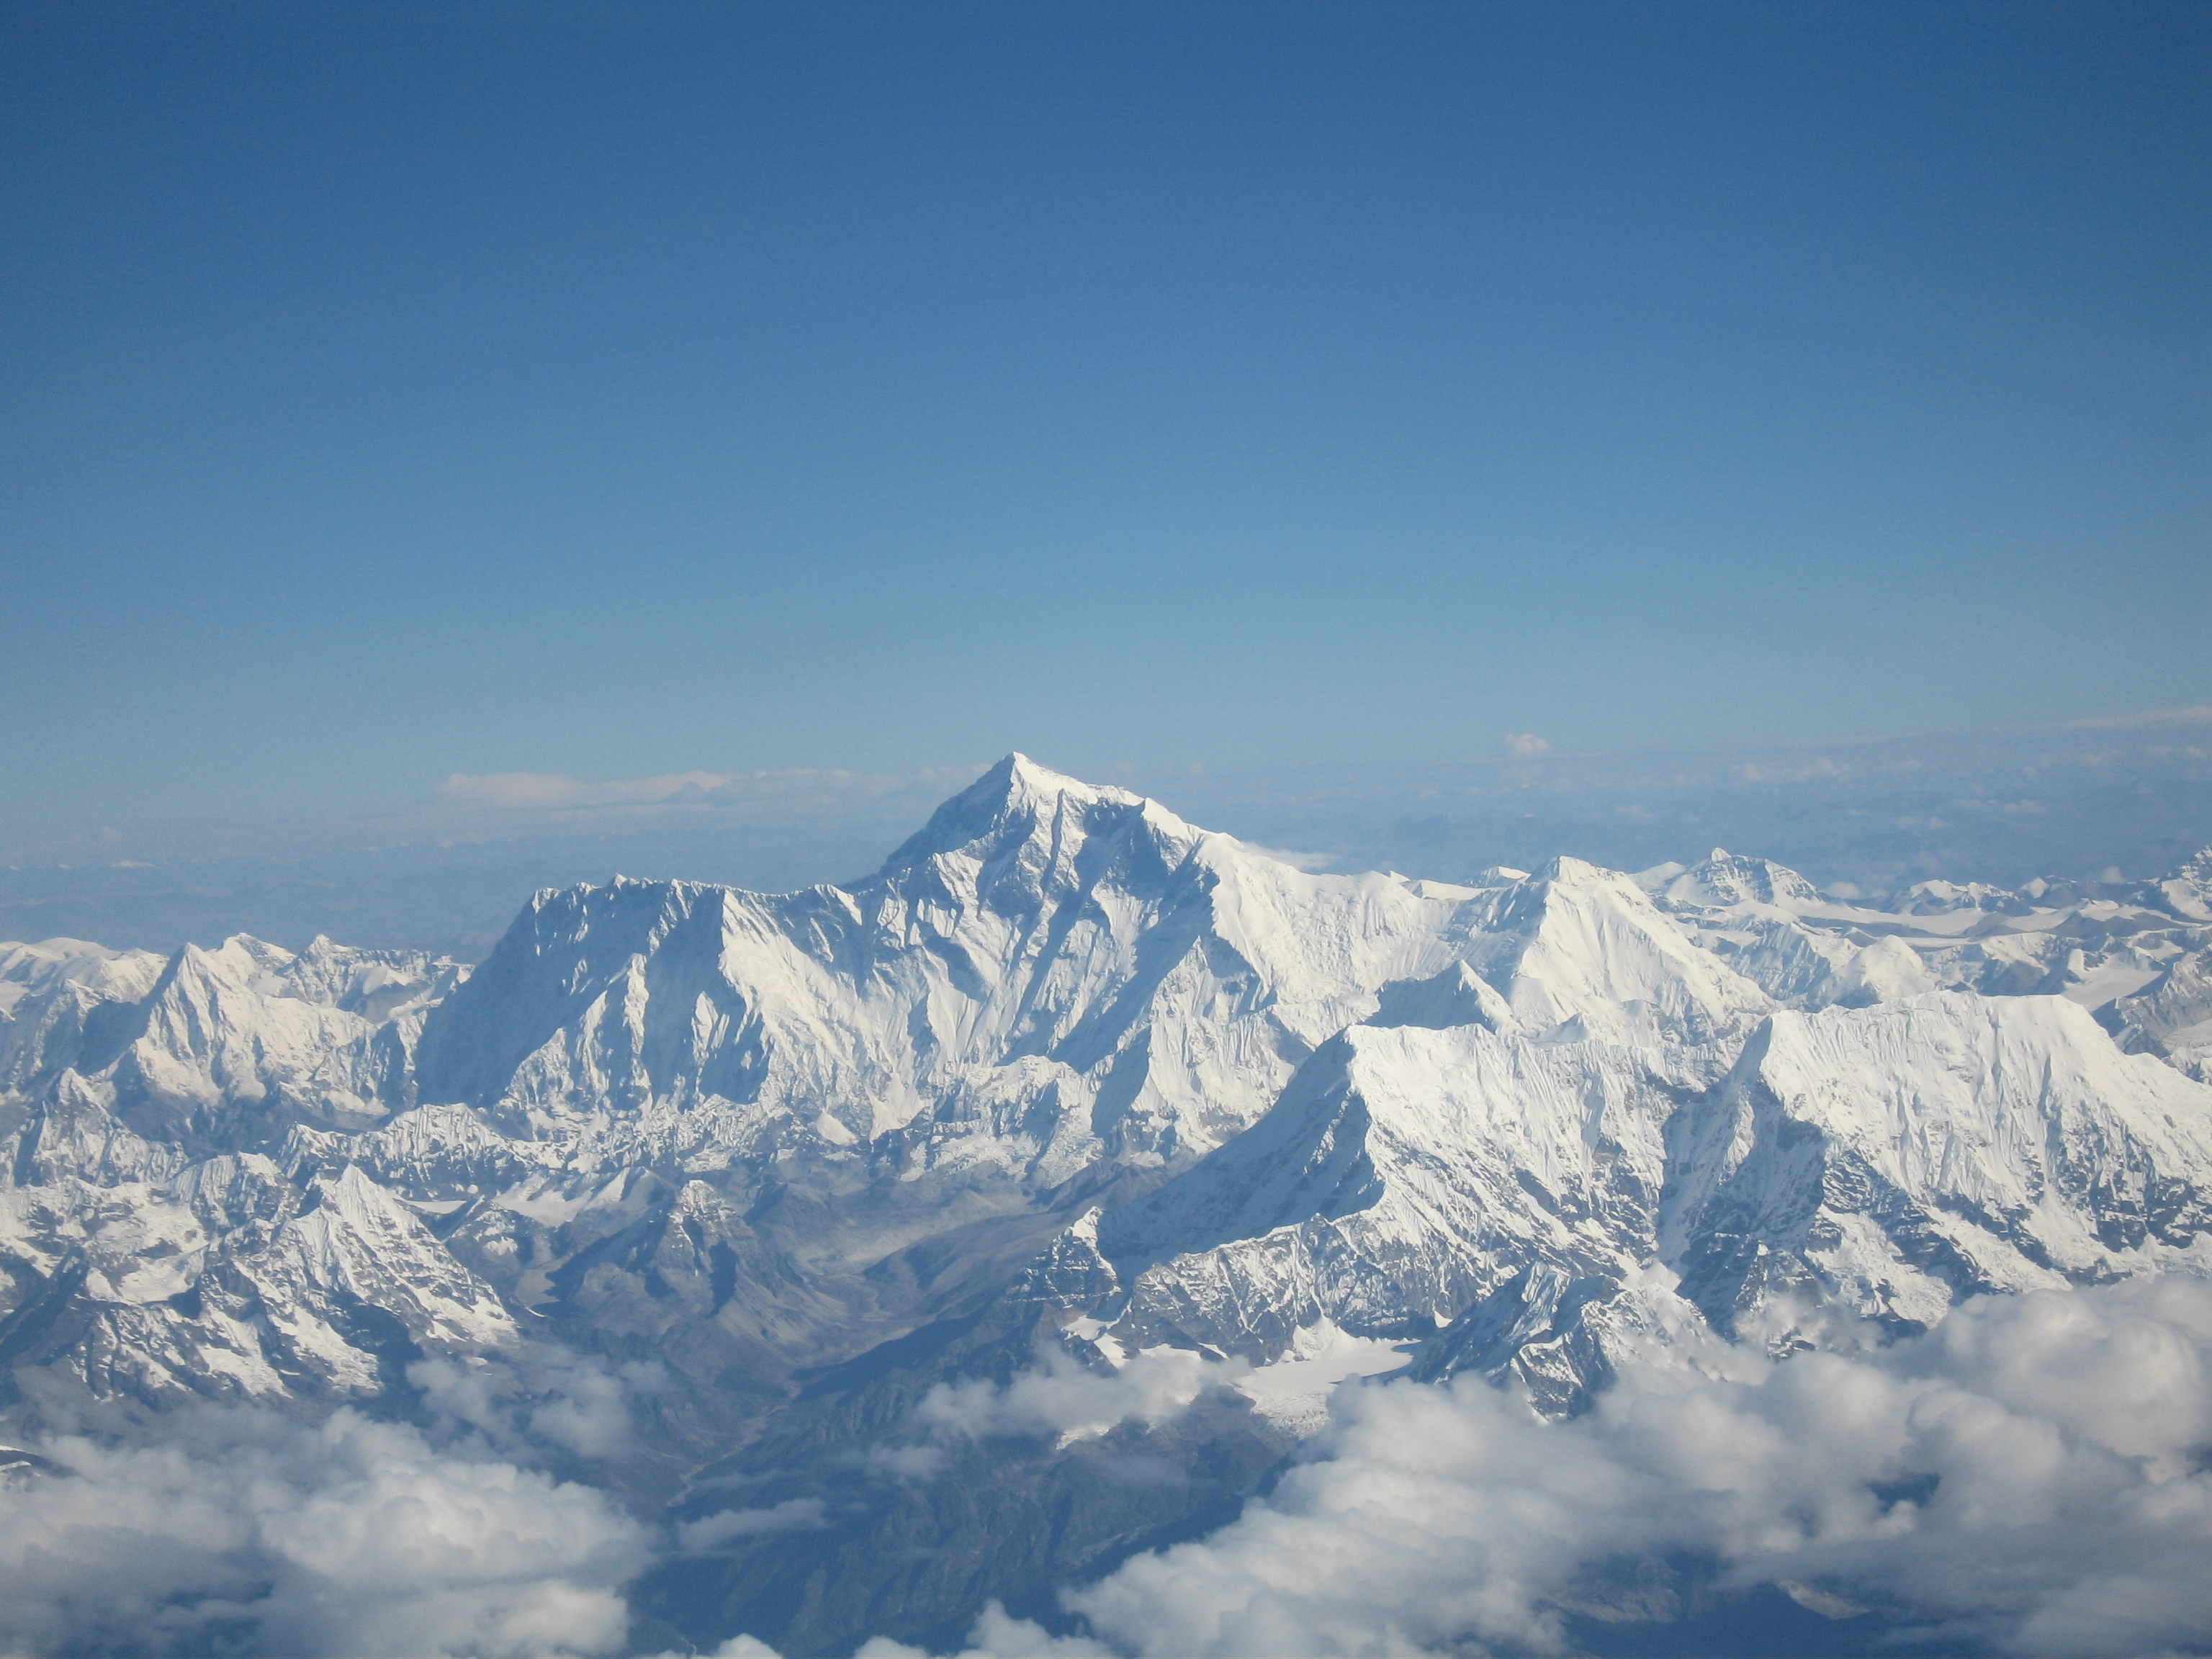 mount_everest_as_seen_from_drukair.jpg